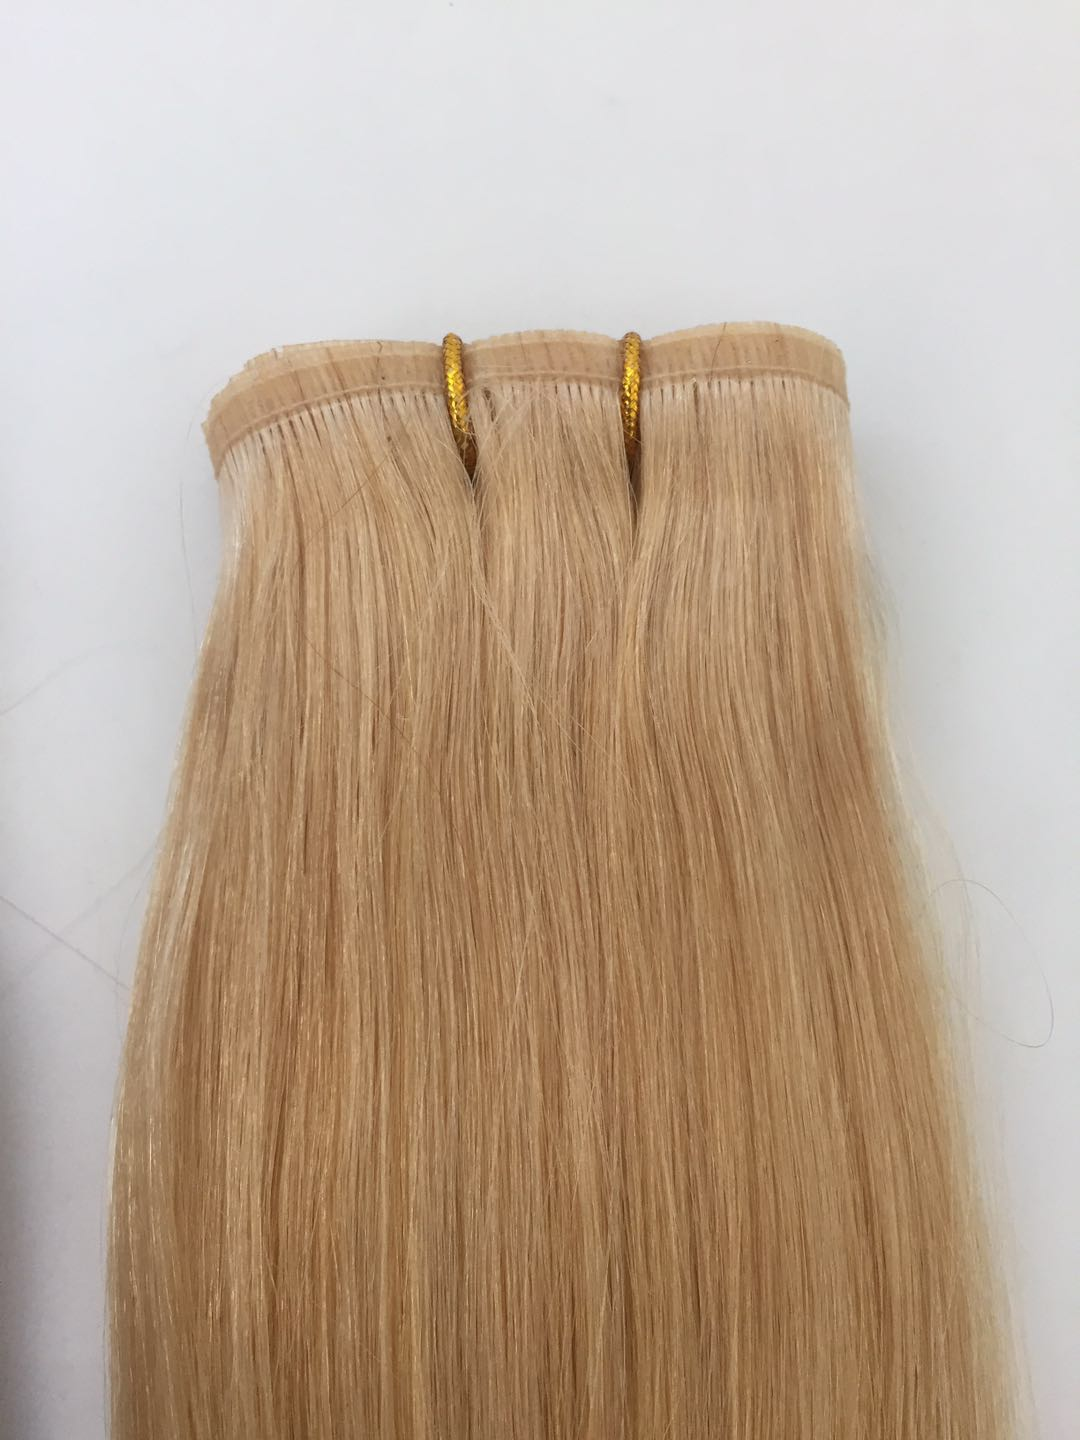 New Double Drawn Flat Remy Human Hair Weave Russian Cuticle Aligned Remy hair PU Skin Weft Seamless Hair extension QM189